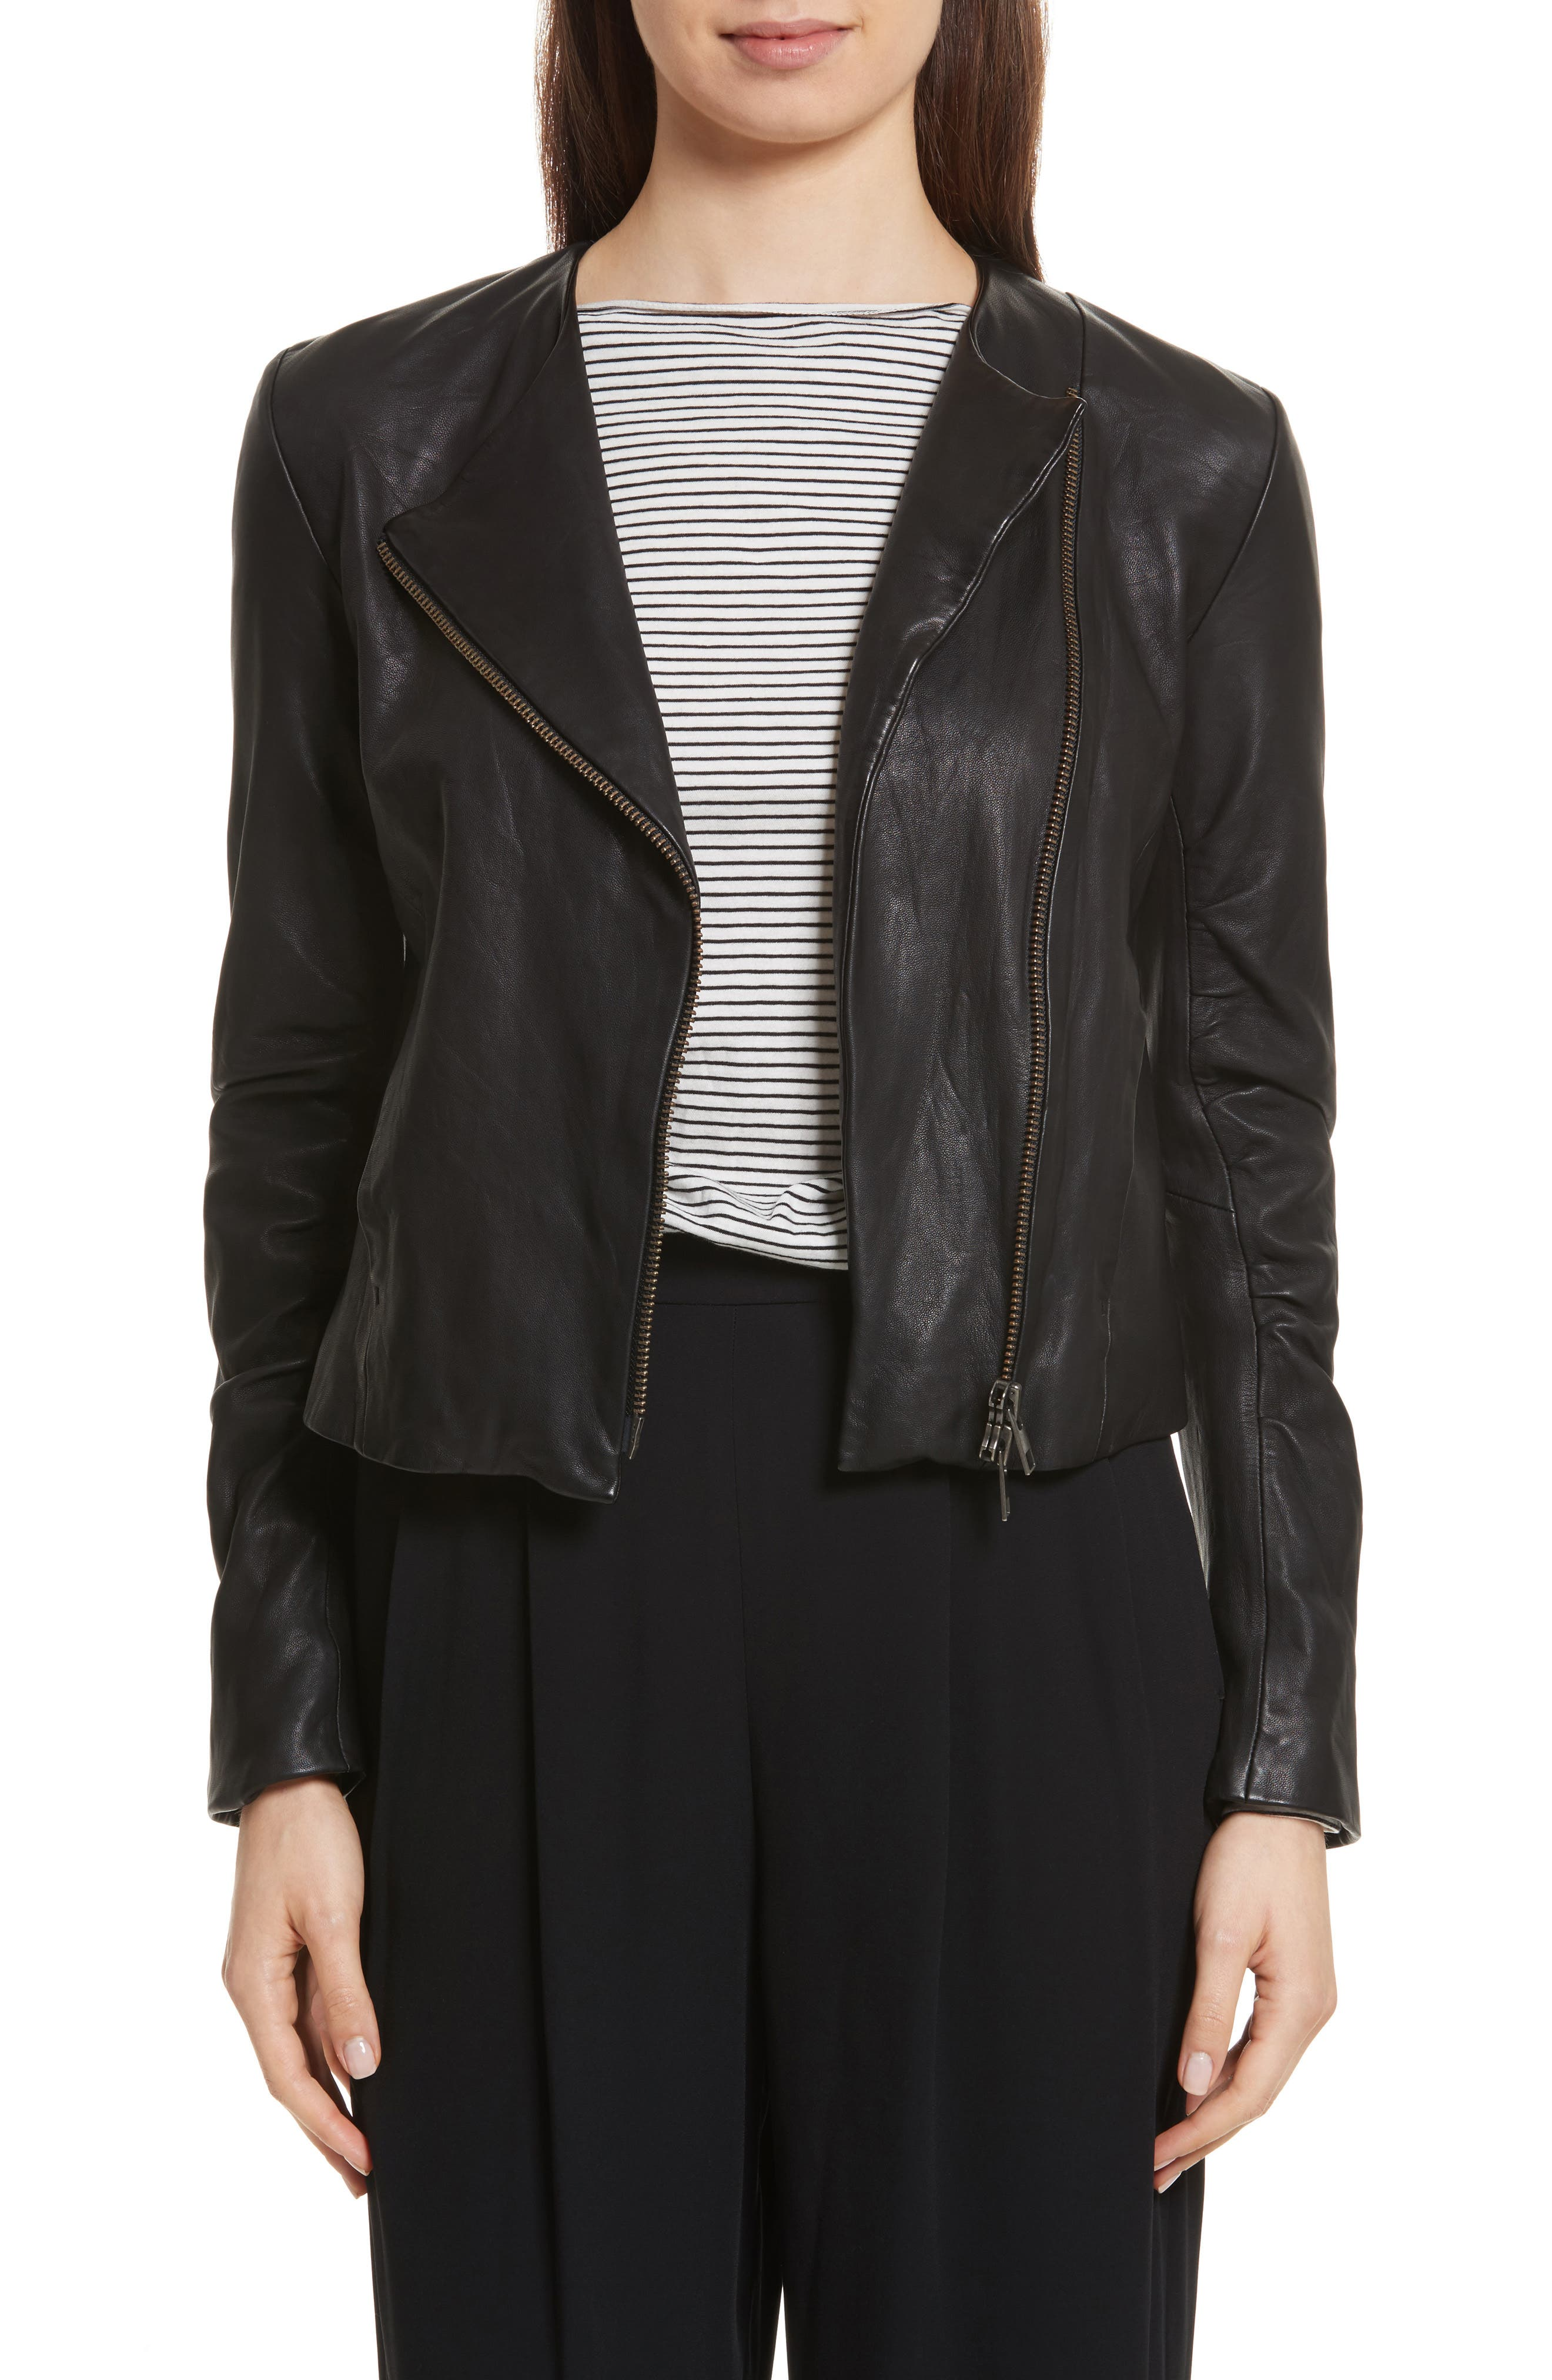 Cross Front Leather Jacket,                             Main thumbnail 1, color,                             001